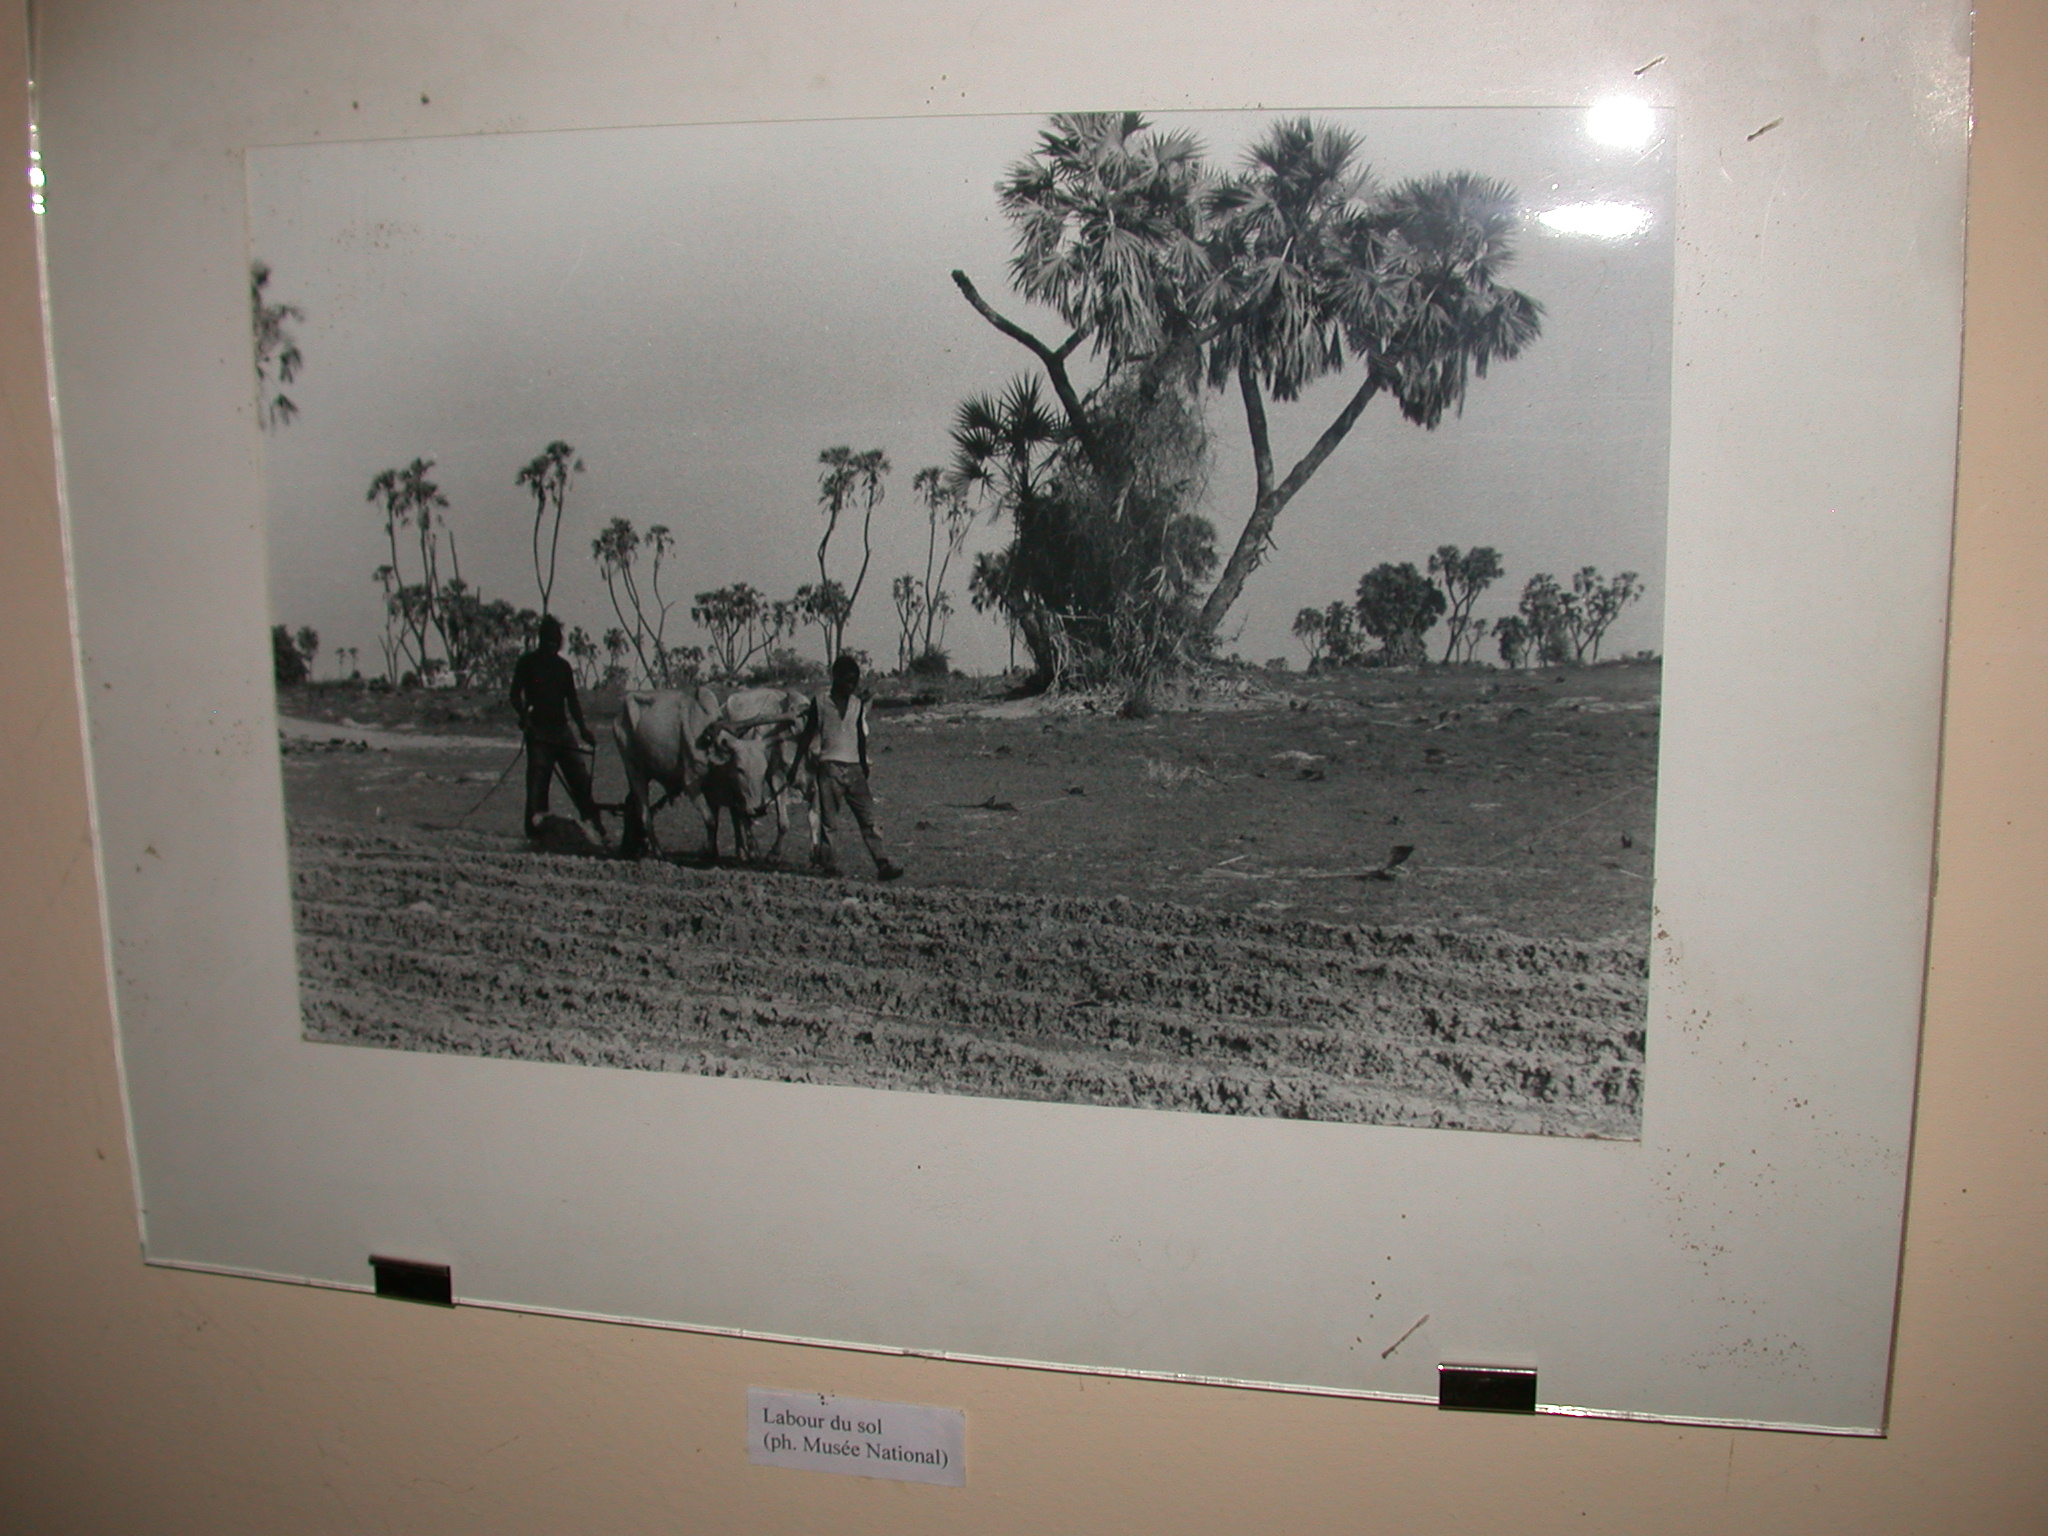 Photo of Working the Soil, Timbuktu Ethnological Museum, Timbuktu, Mali